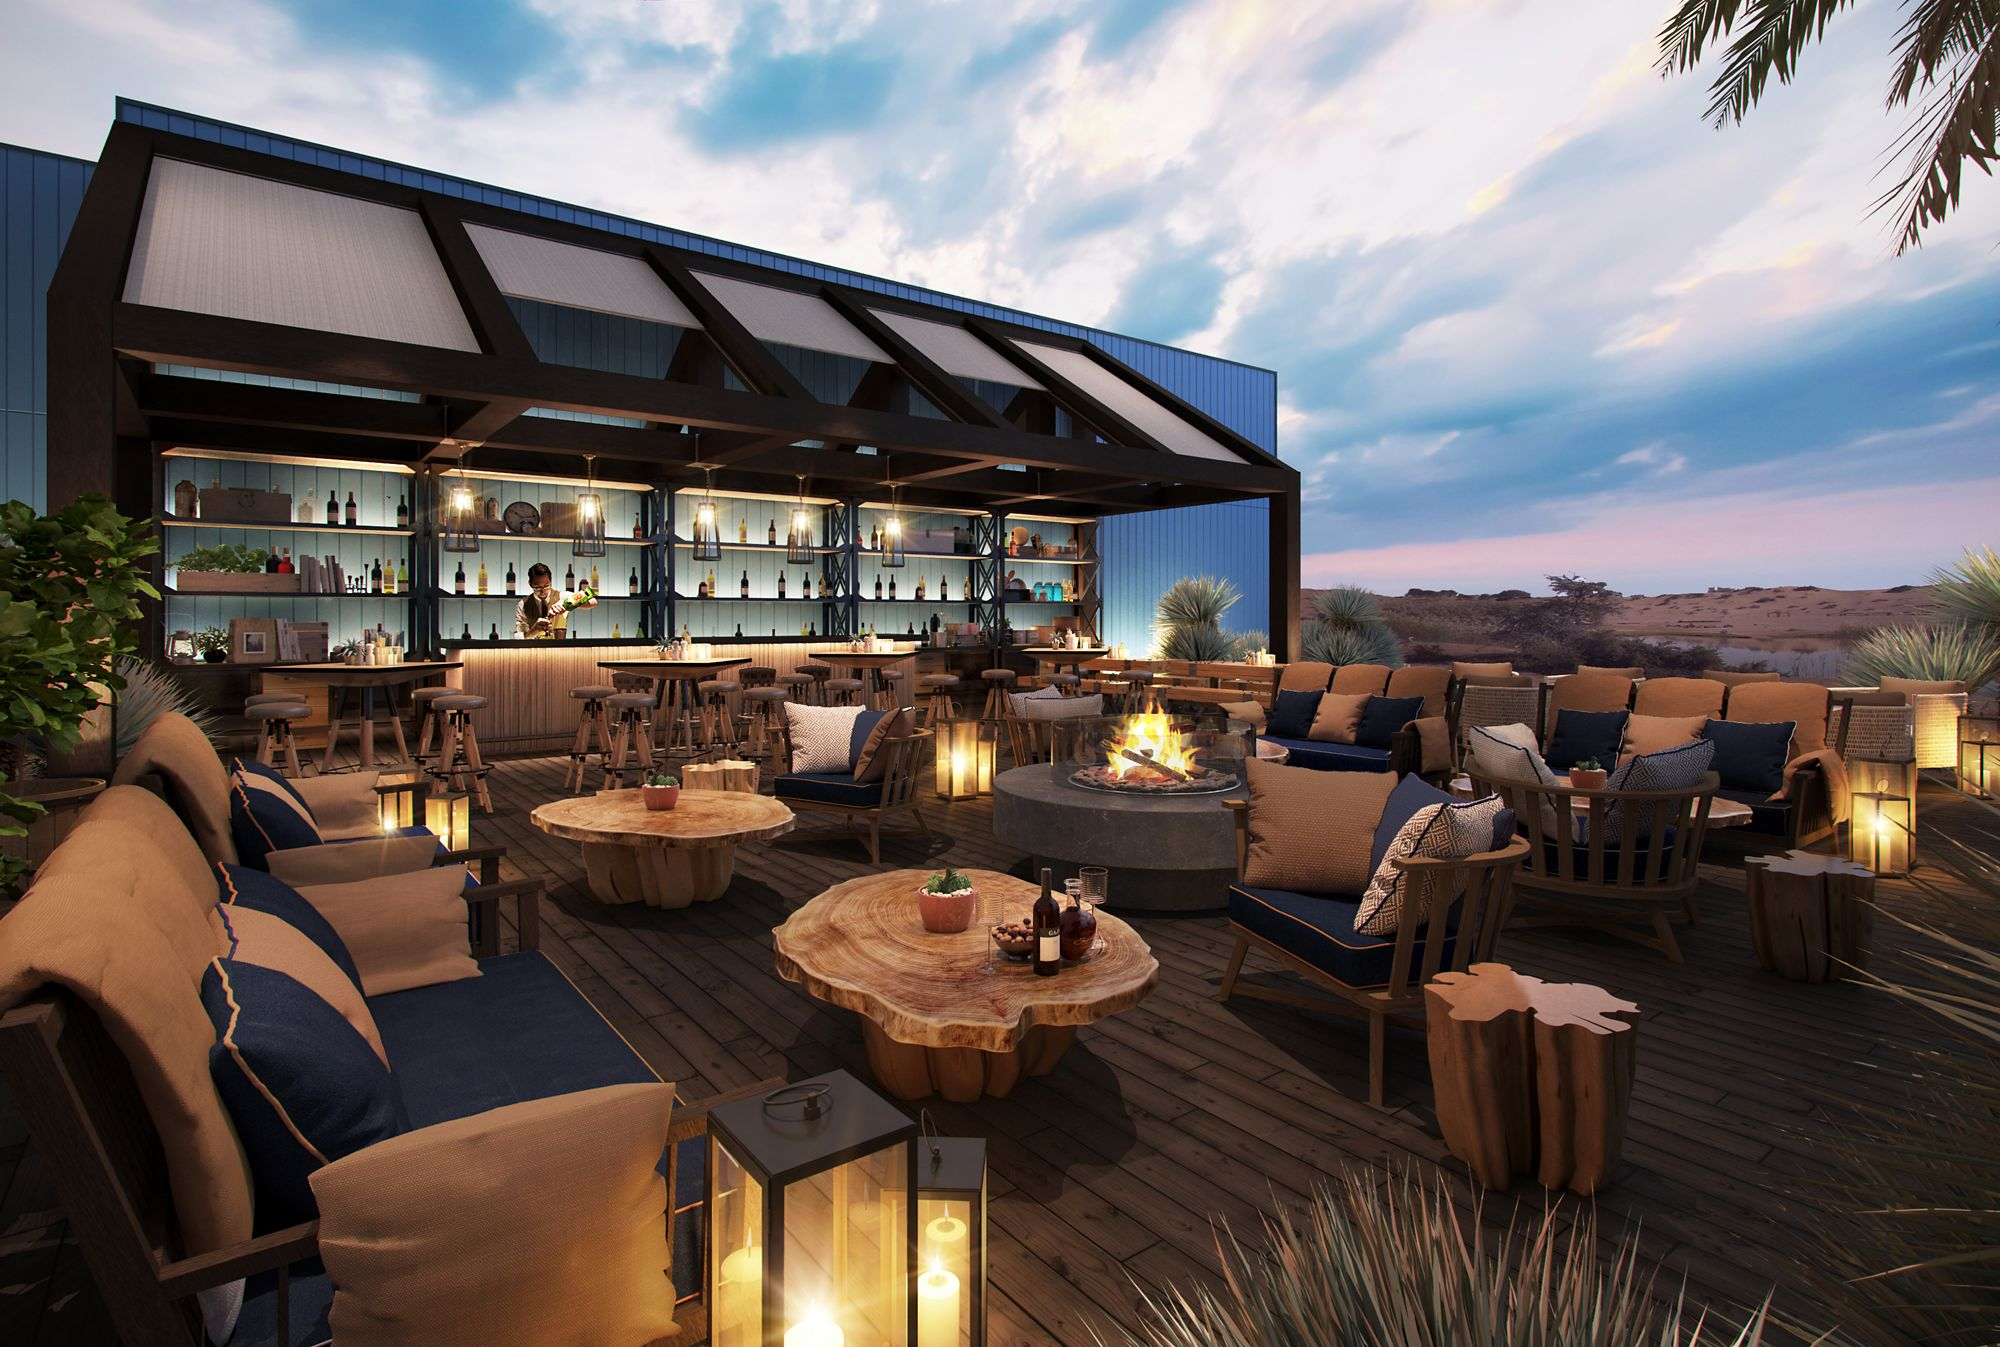 Outdoor seating with black-and-tan couches and chairs and wood-slab tables as well as a covered bar area